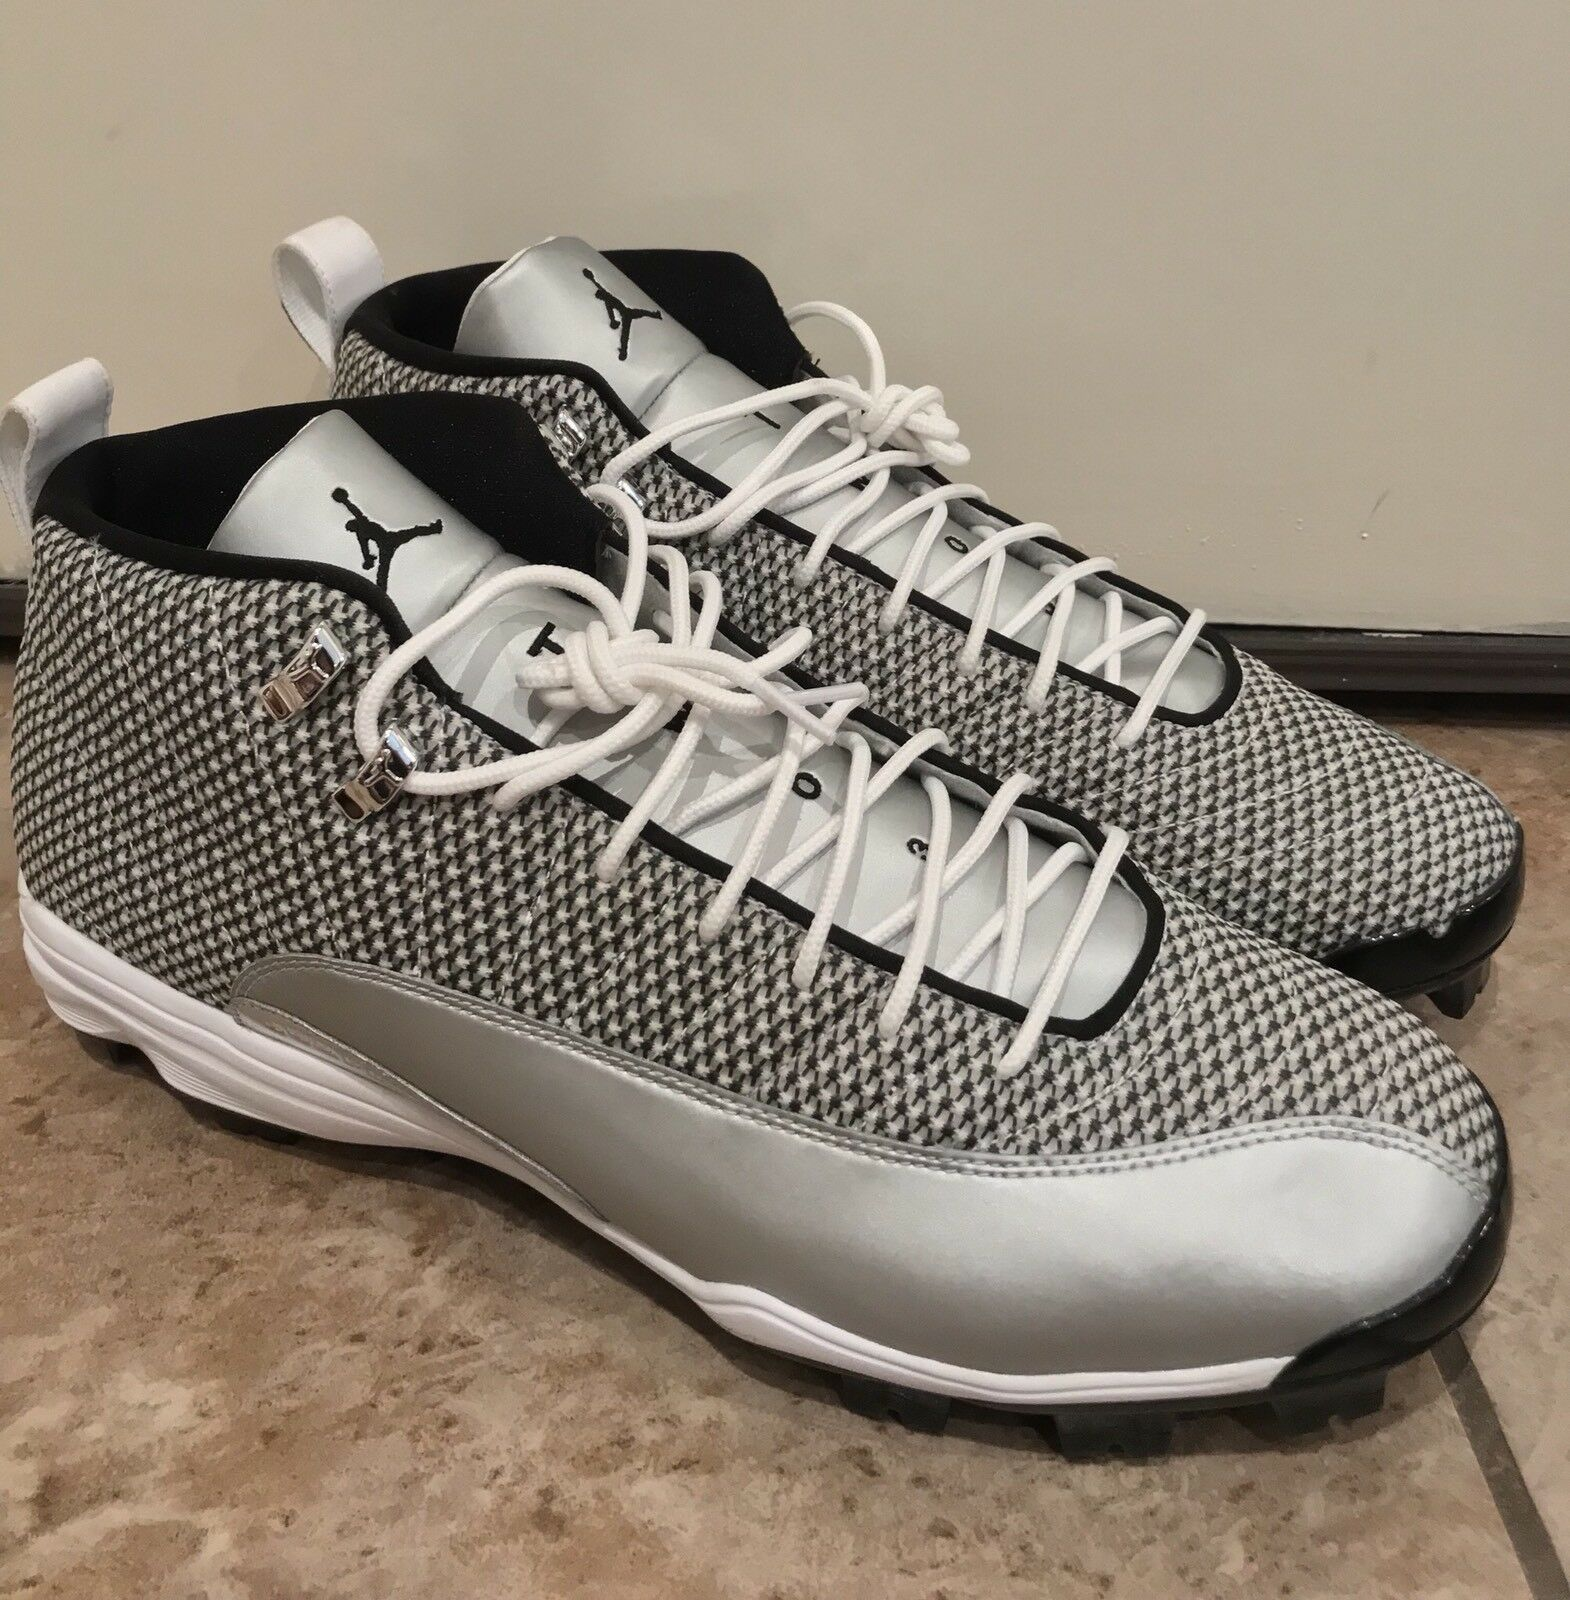 NEW Air Jordan 12 XII Authentic Baseball Cleats Shoes Silver Mens 15 854566-100